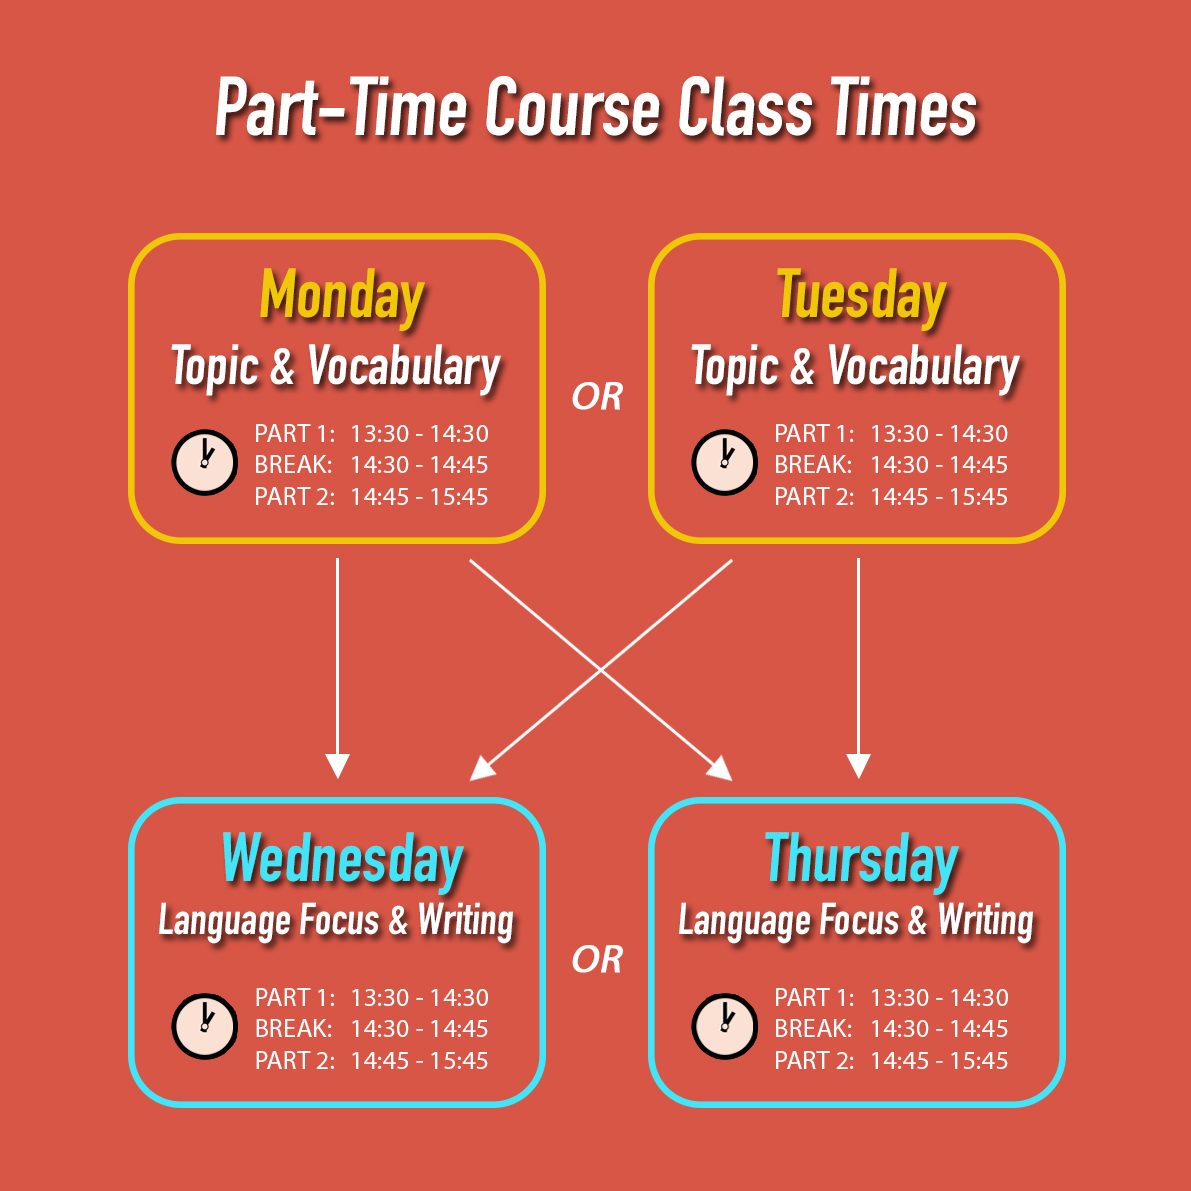 Part-Time Course Info